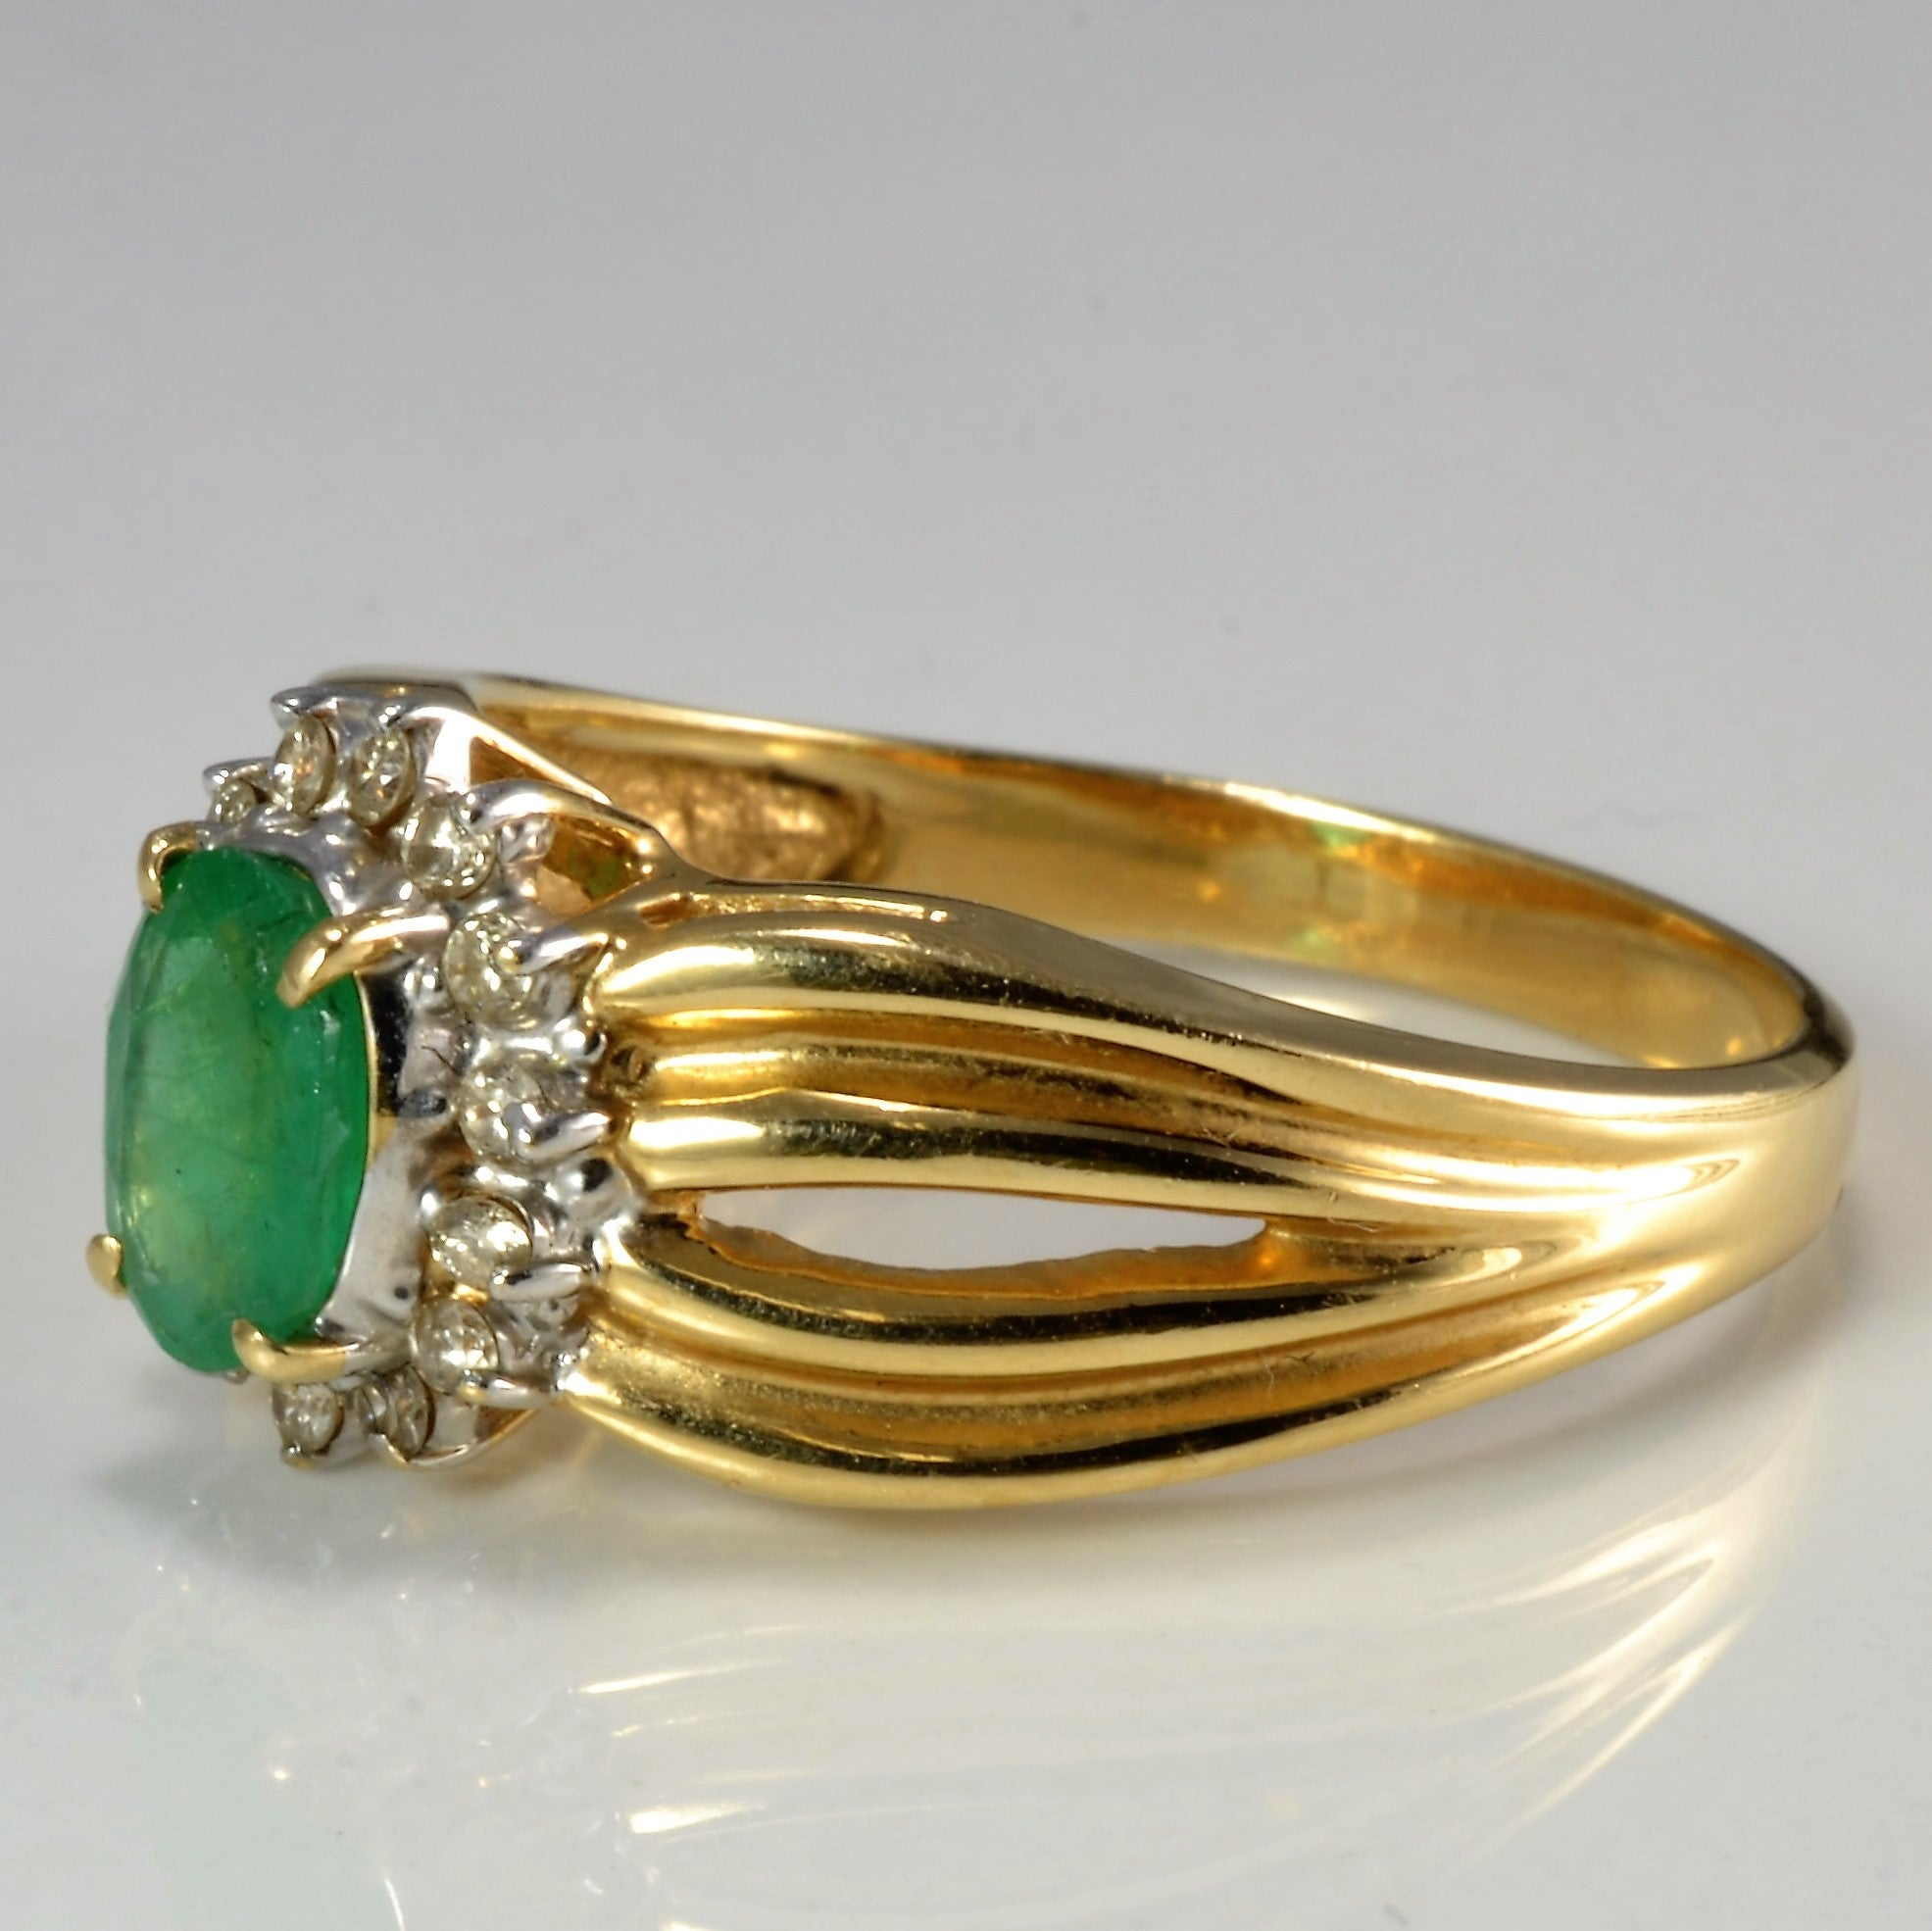 Emerald & Diamond Cocktail Ring | 0.22 ctw, SZ 8.75 |